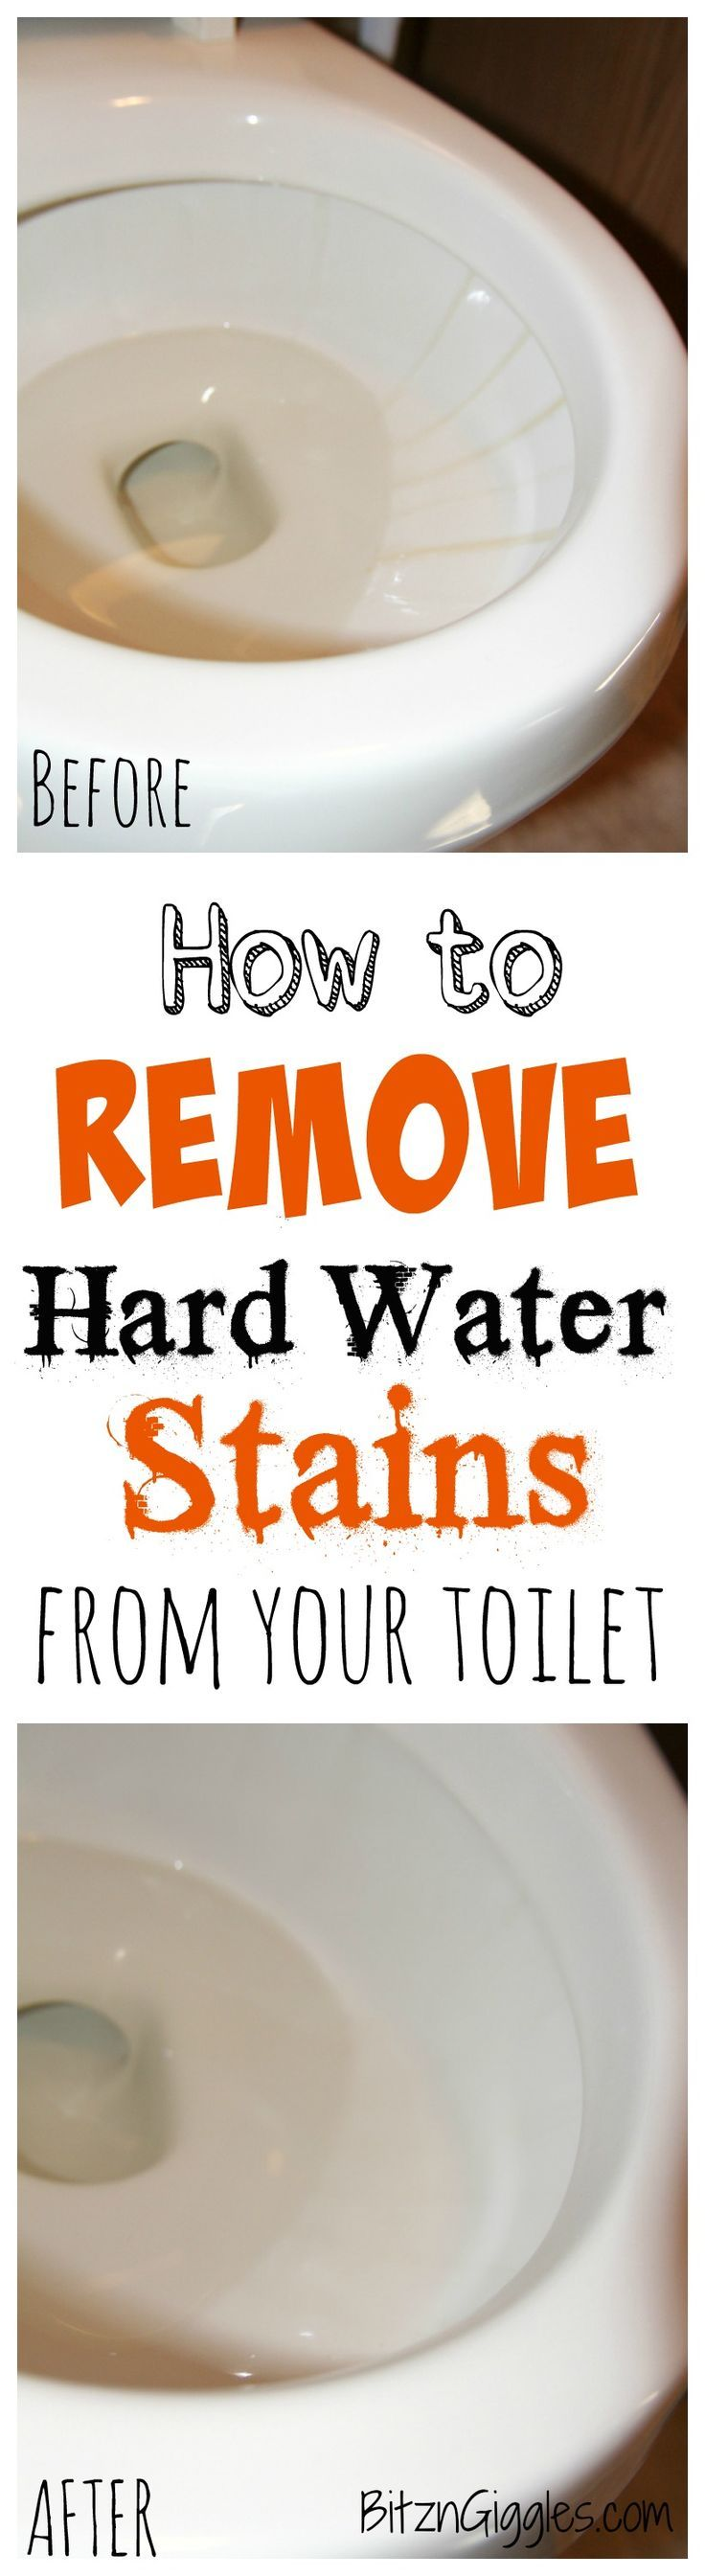 How To Remove Hard Water Stains From Your Toilet Diy